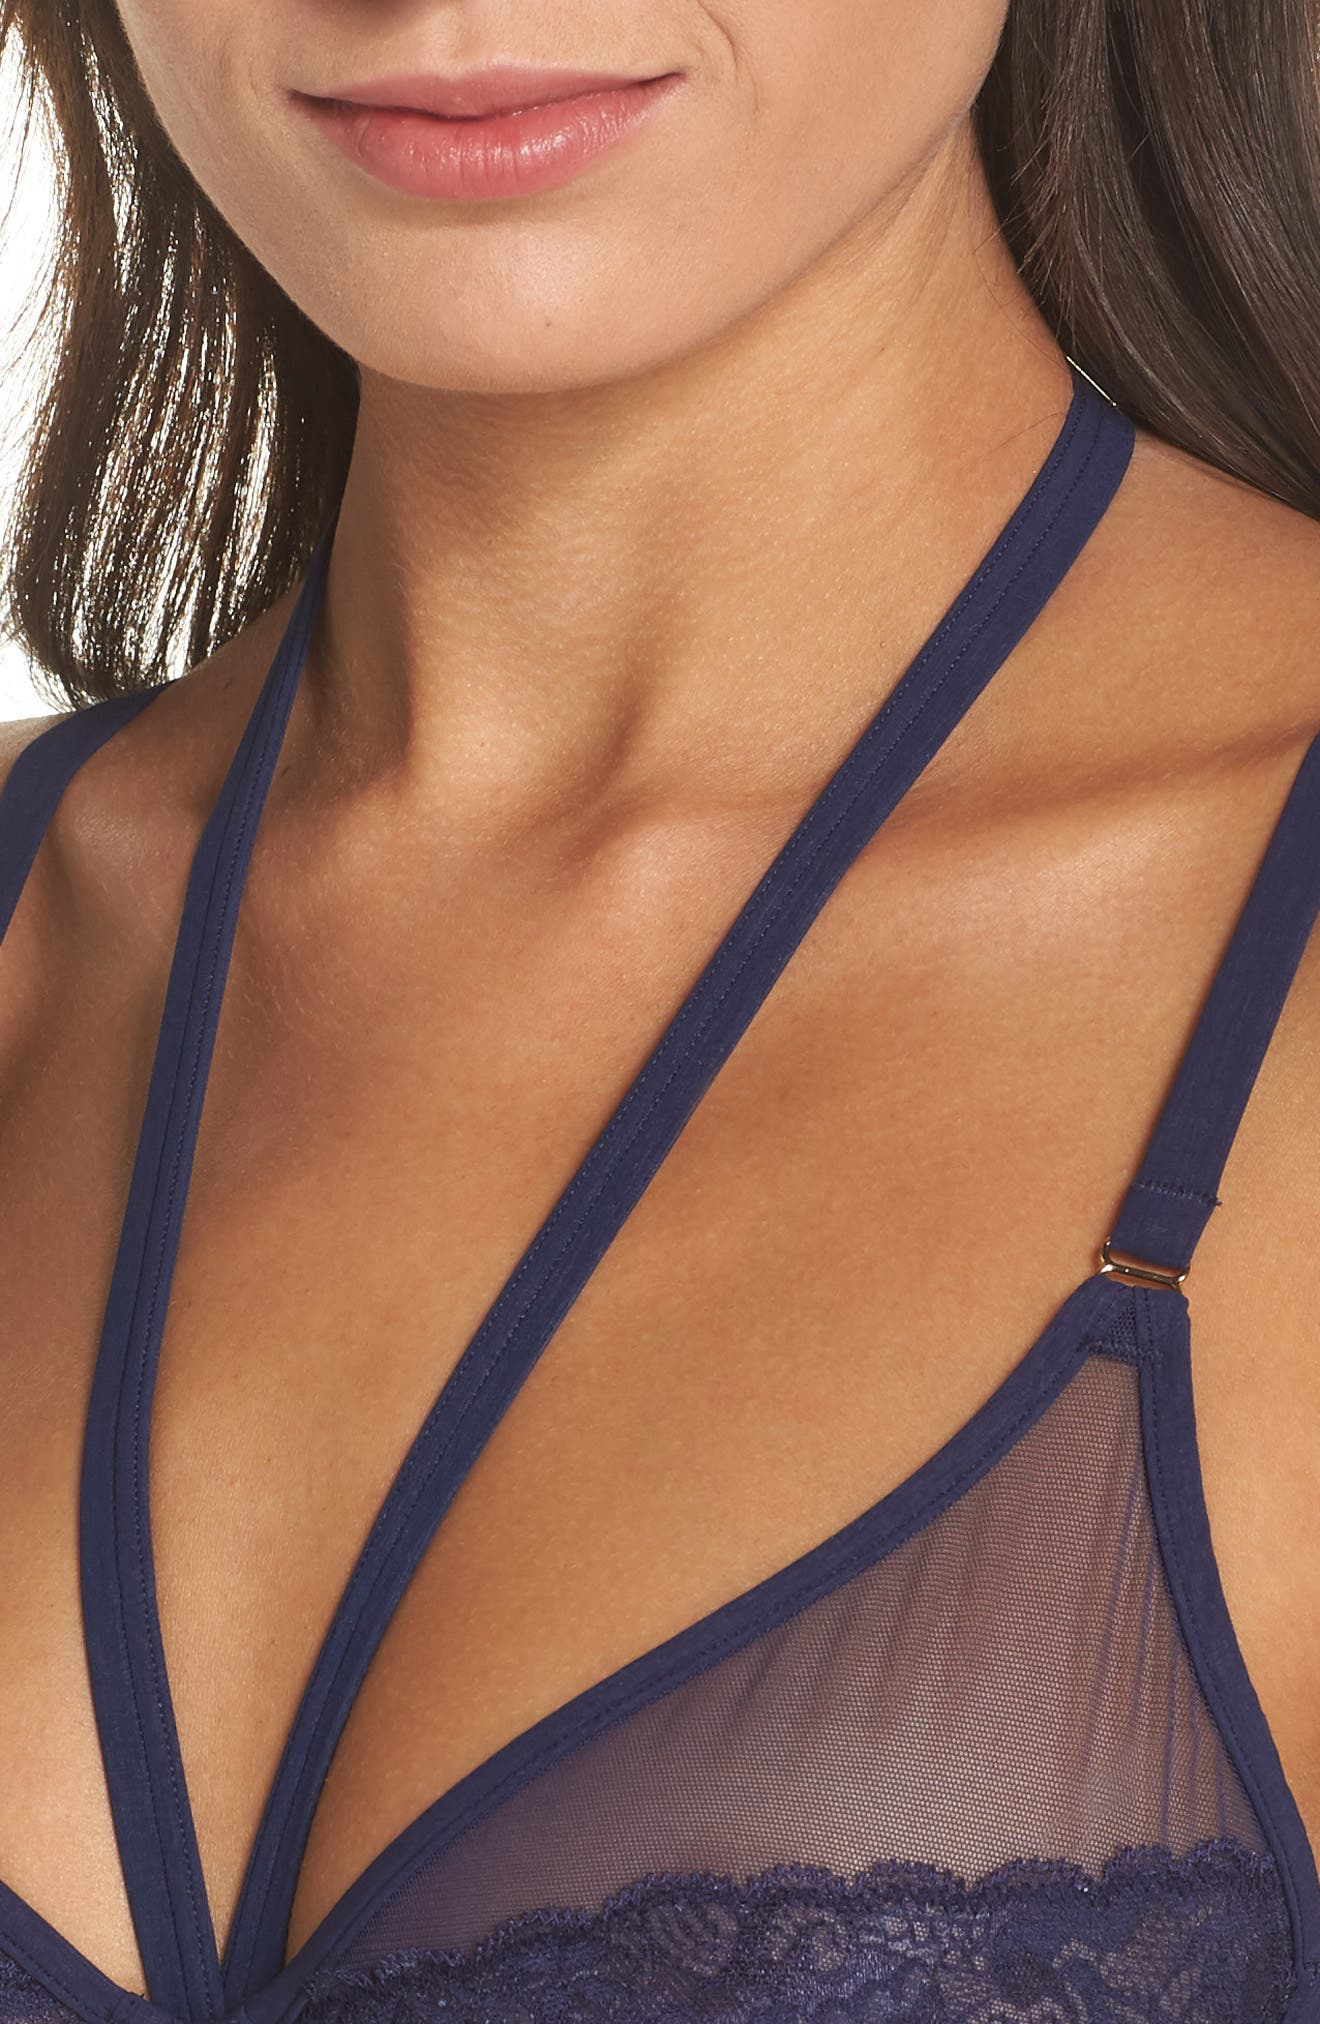 Rock Candy Underwire Bra,                             Alternate thumbnail 4, color,